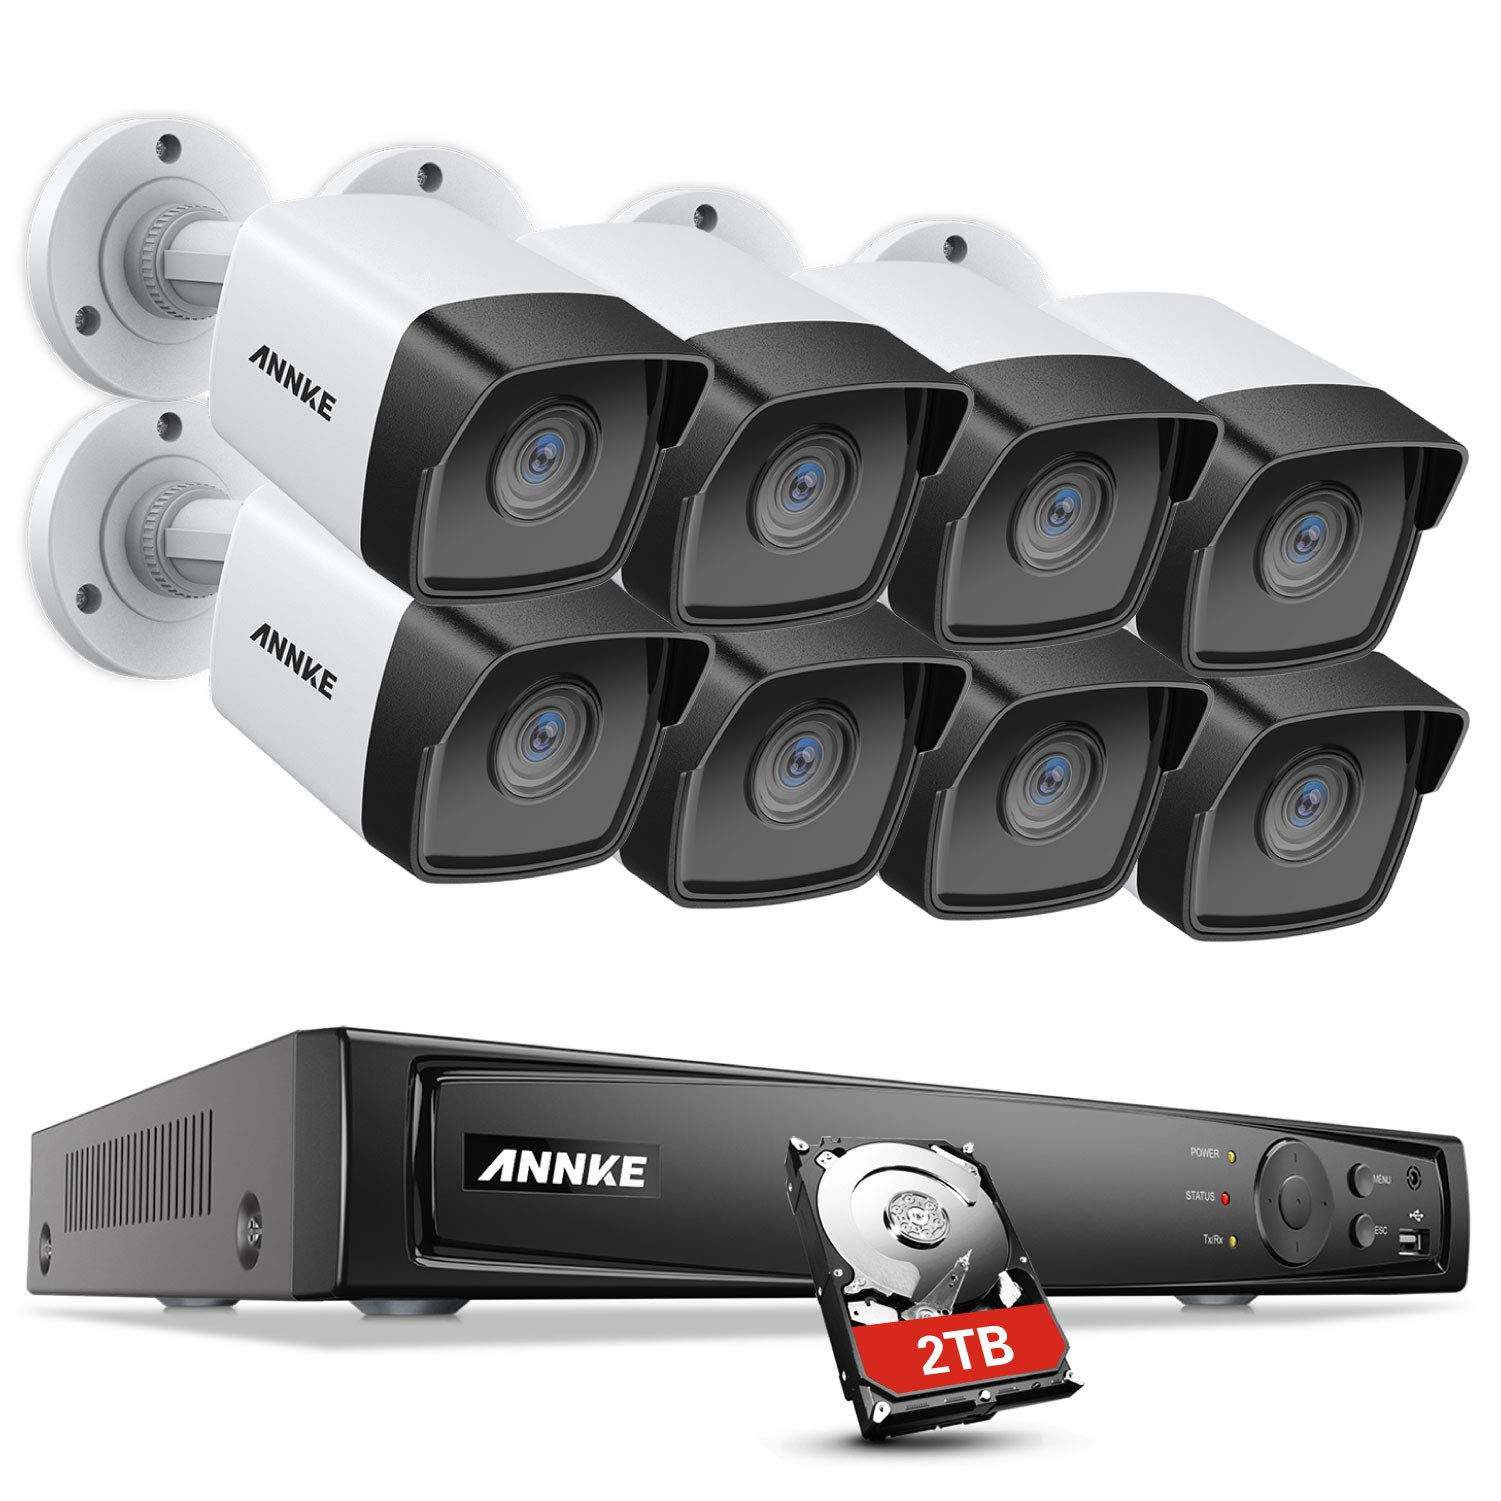 ANNKE 5MP PoE Home Security Camera System H.265+ 8CH 4K NVR with 8pcs 5MP Outdoor PoE IP Cameras, Starlight Color Night Vision, IP67 Weatherproof, Easy Remote Access, 2T HDD Store More Video by ANNKE